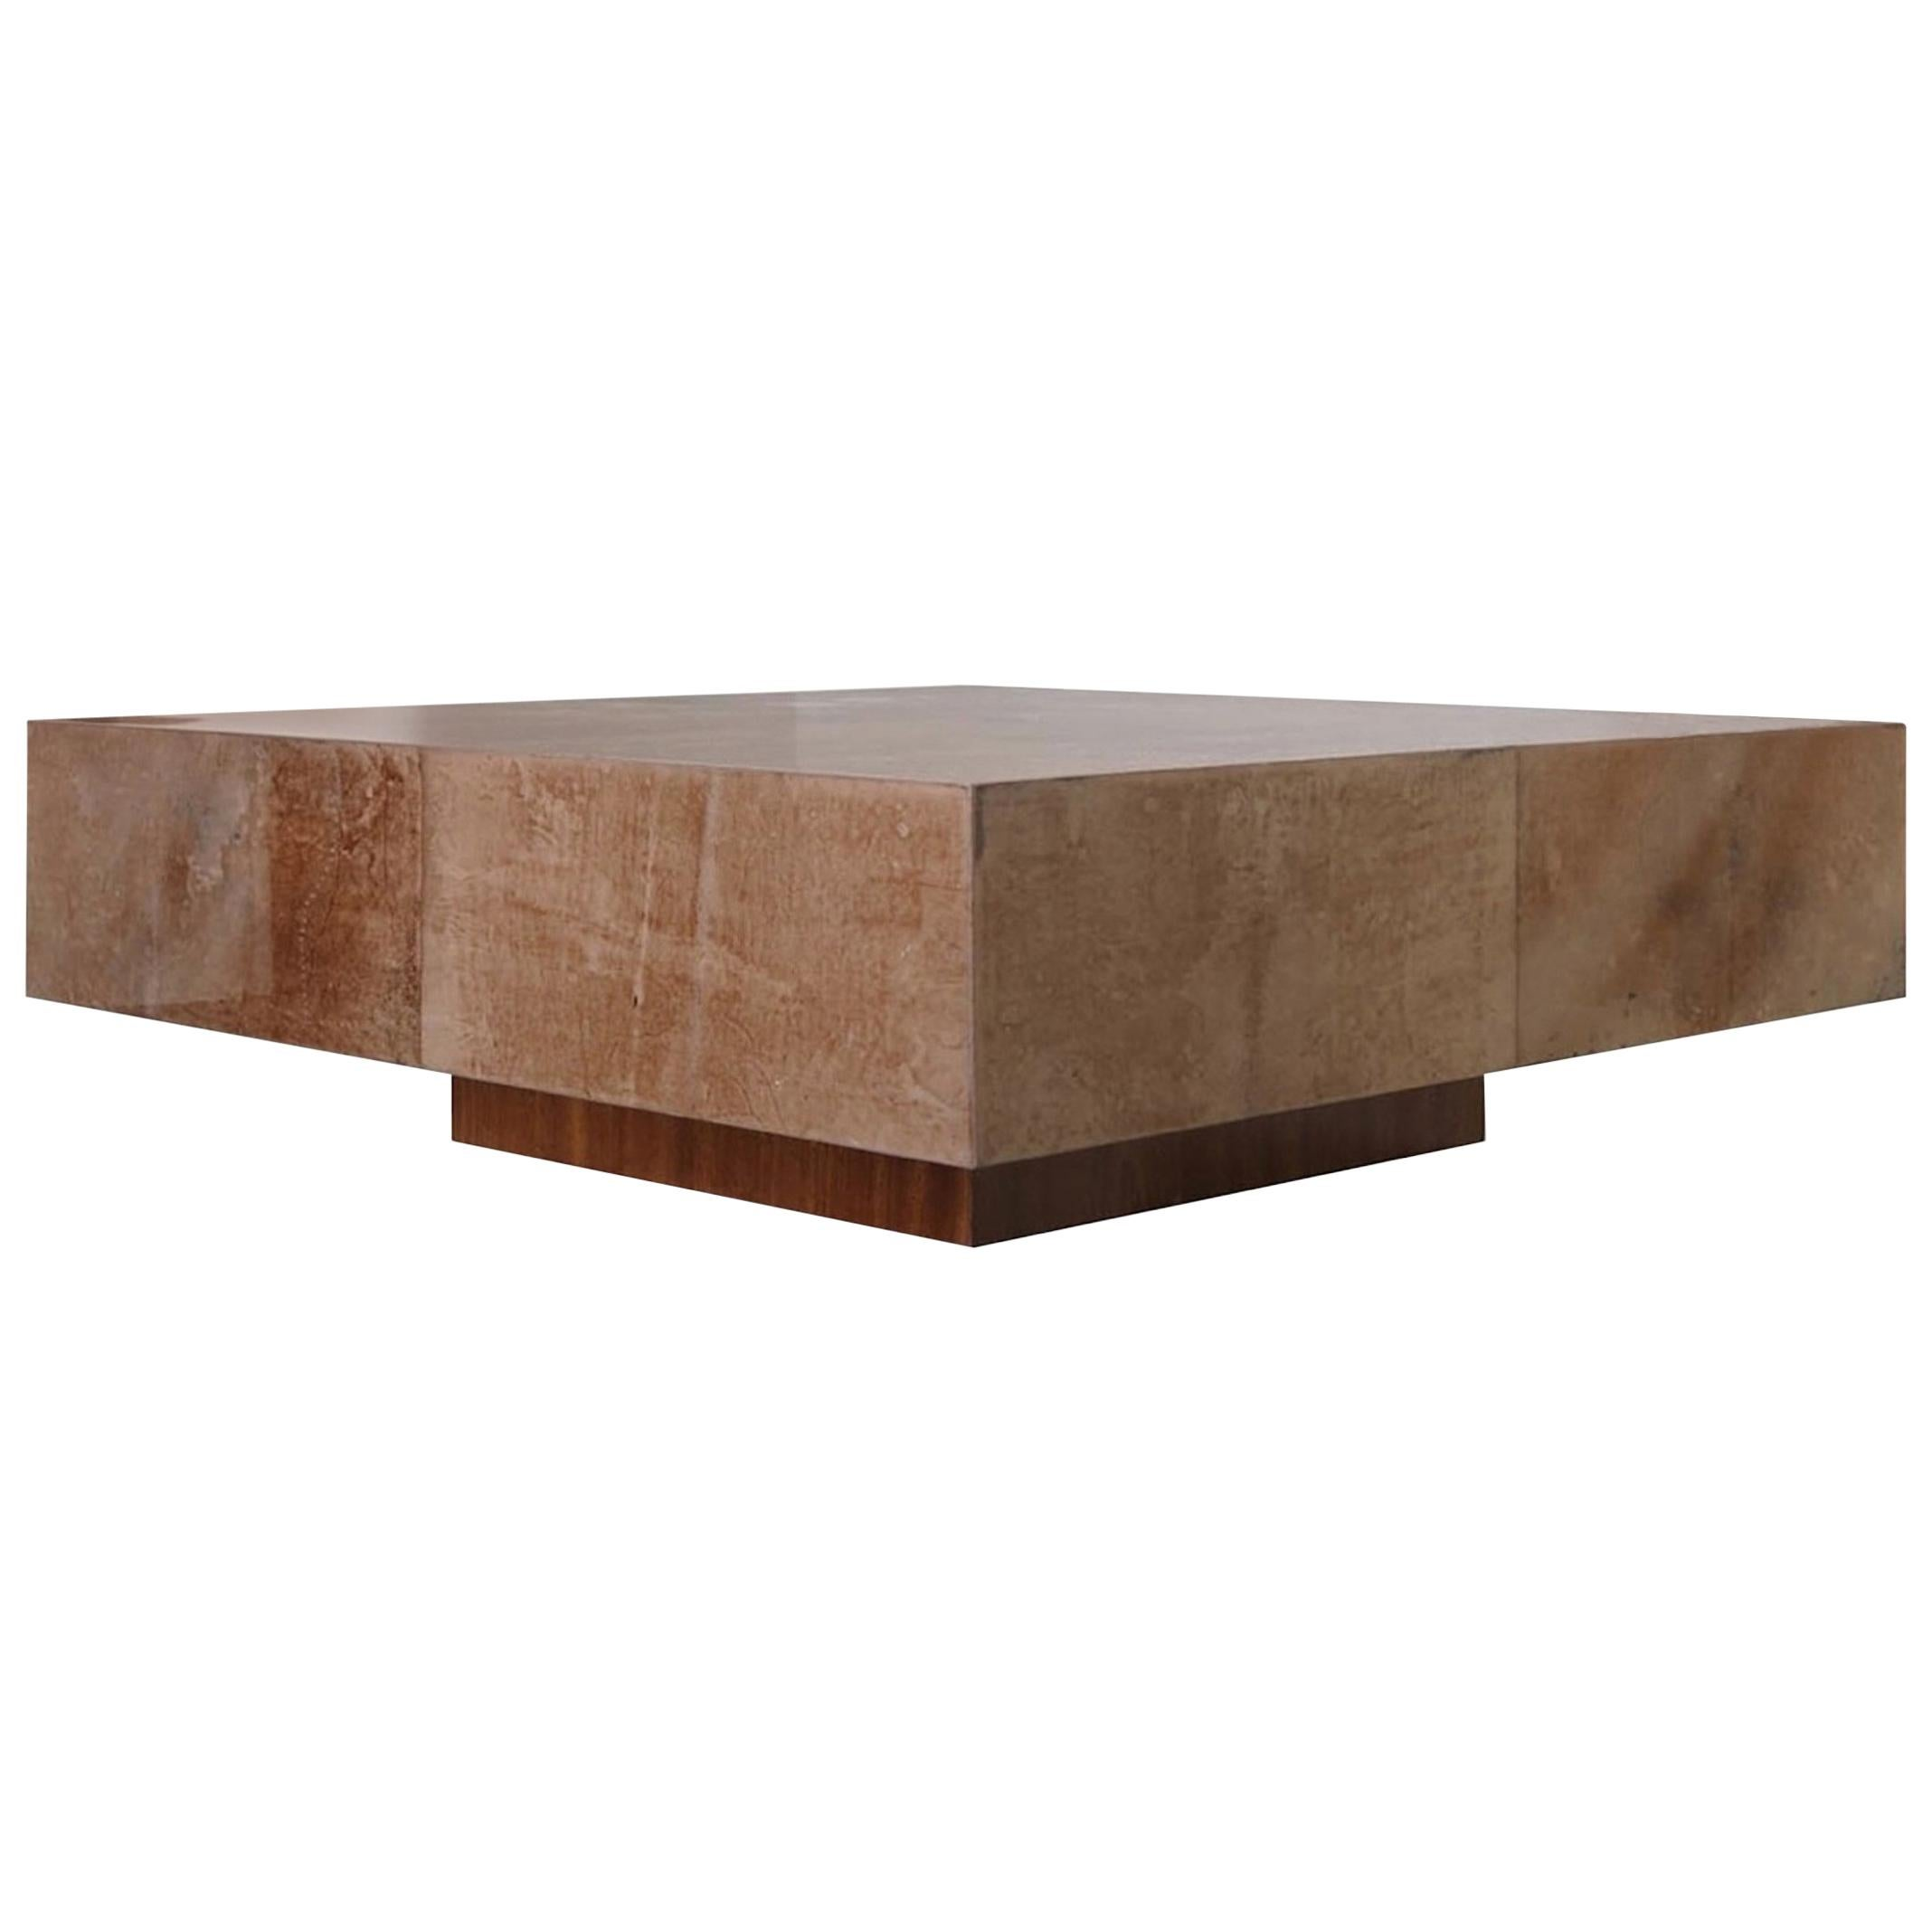 1950s Italian Coffee Table in Parchment Goatskin in the Style of Aldo Tura